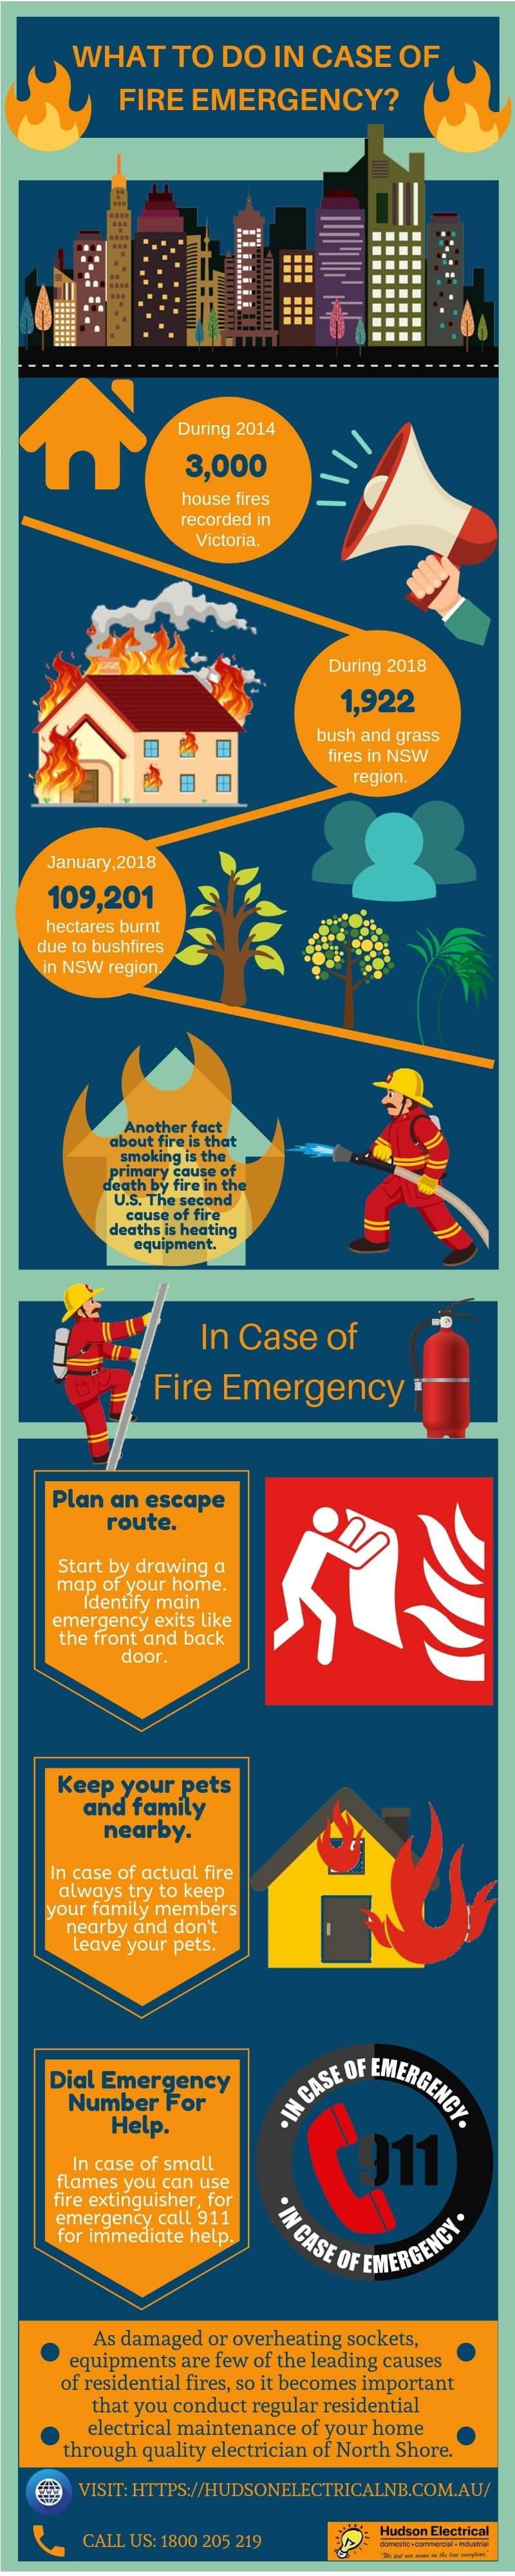 What to do in case of a fire emergency?